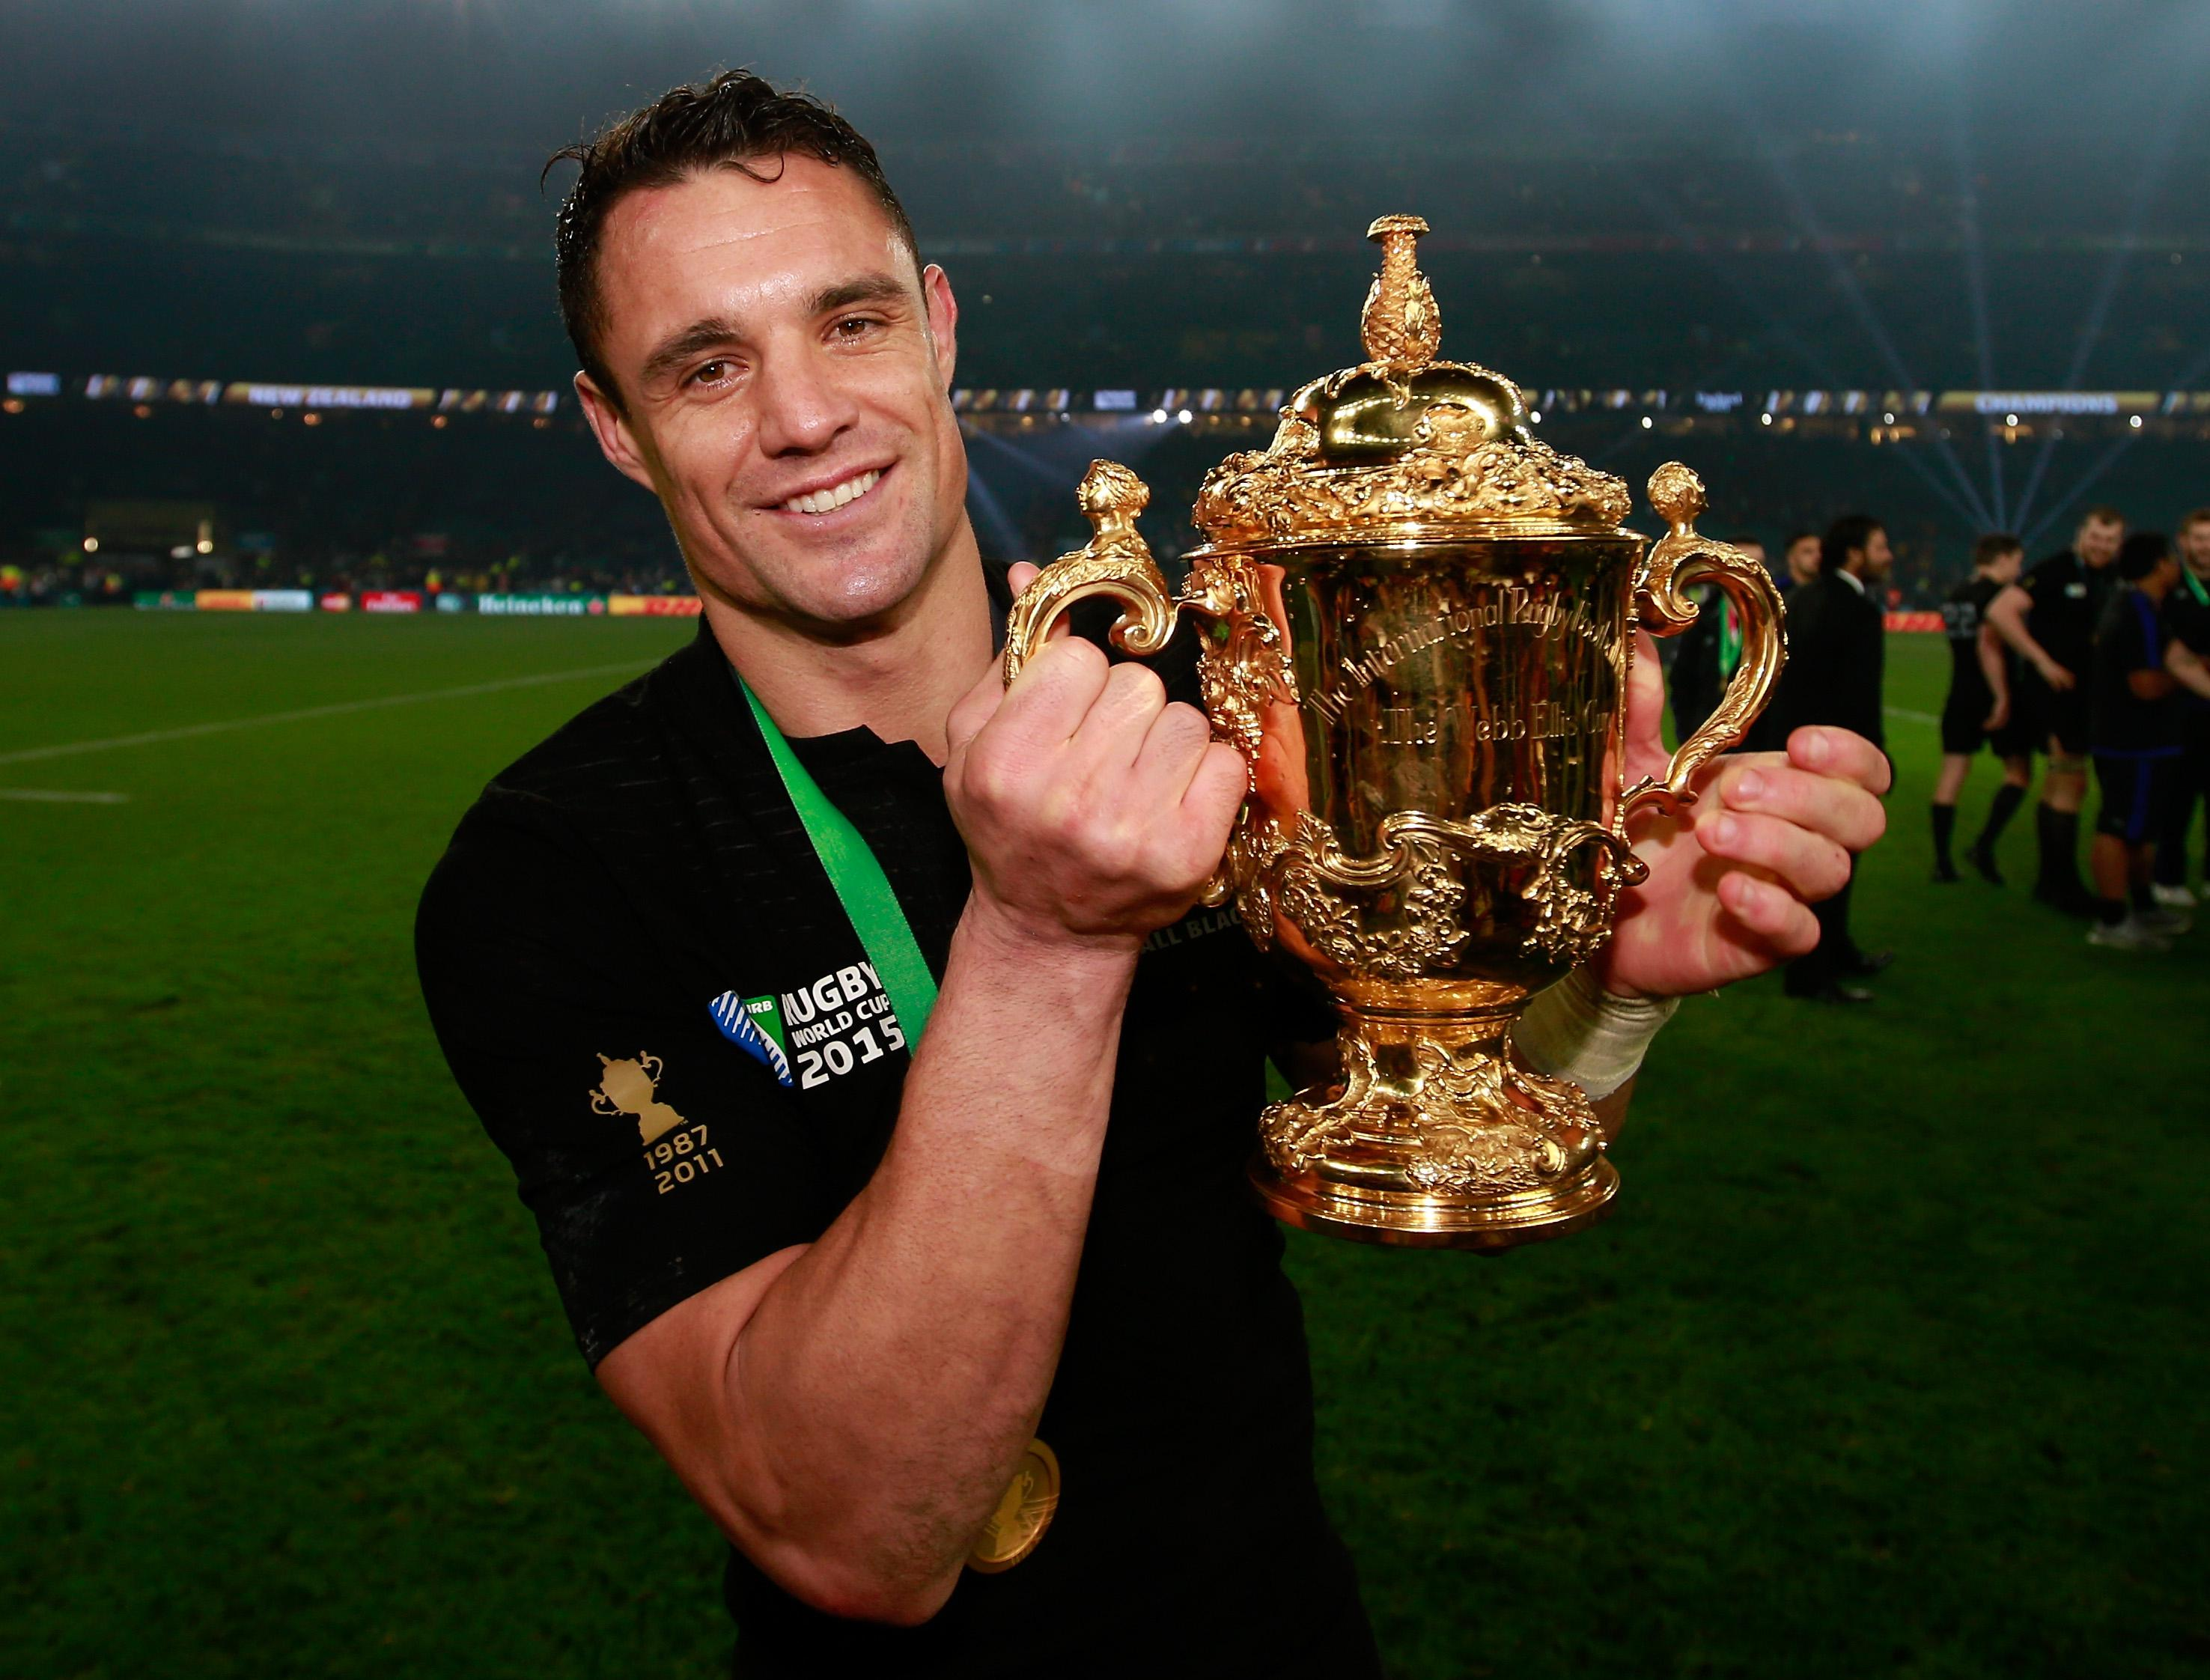 Dan Carter is two time World Cup champion and is set to appear in Soccer Aid